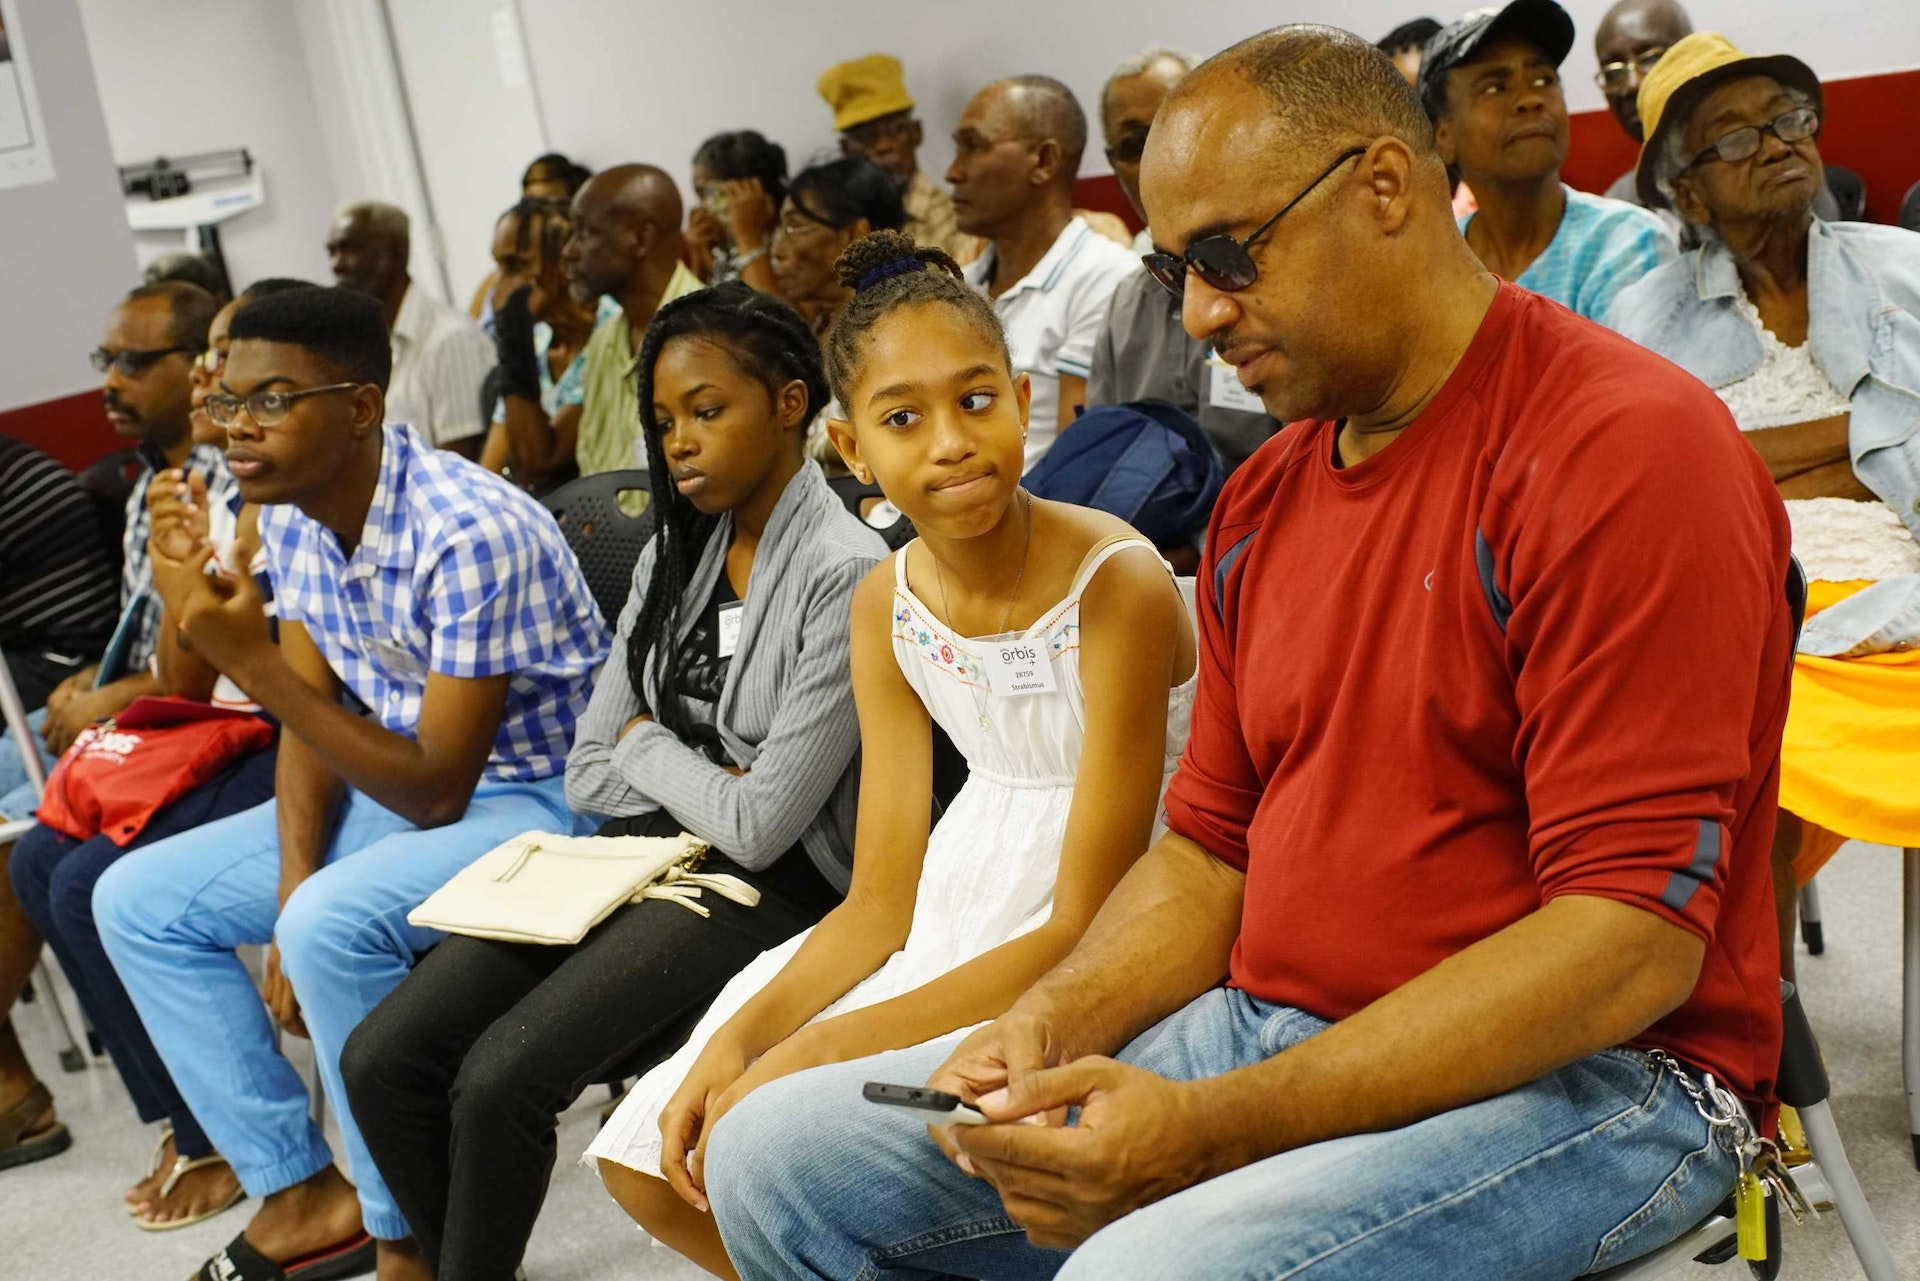 Savynna waits to be screened by eye teams during Orbis Flying Eye Hospital project in Barbados